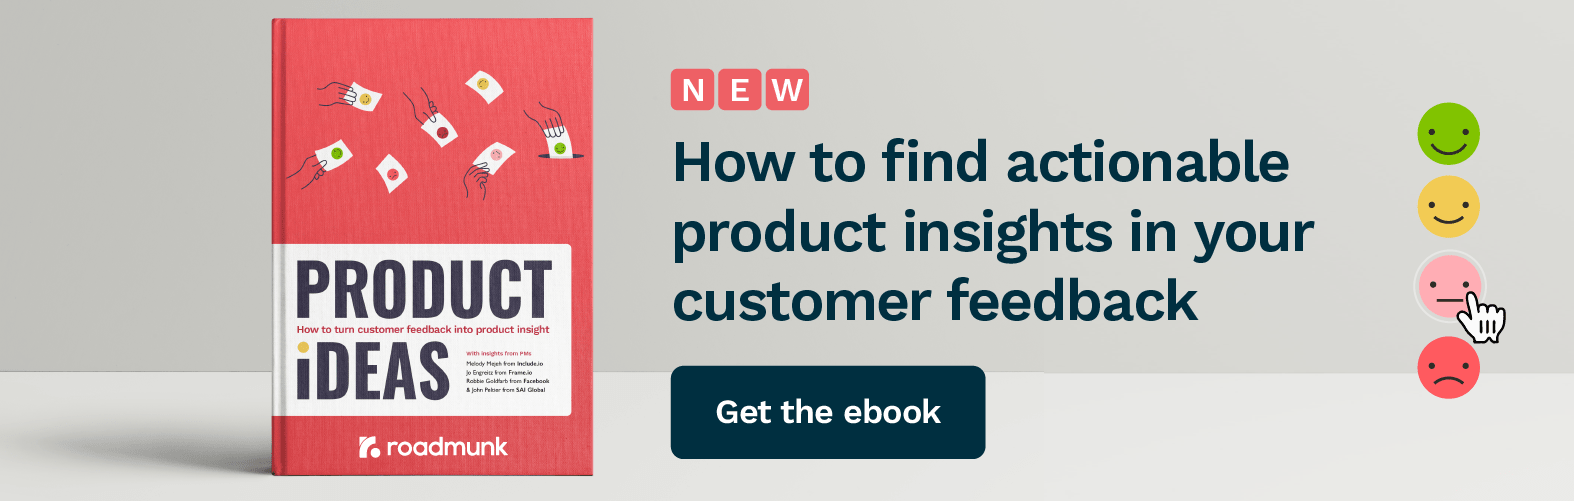 customer-feedback-ebook